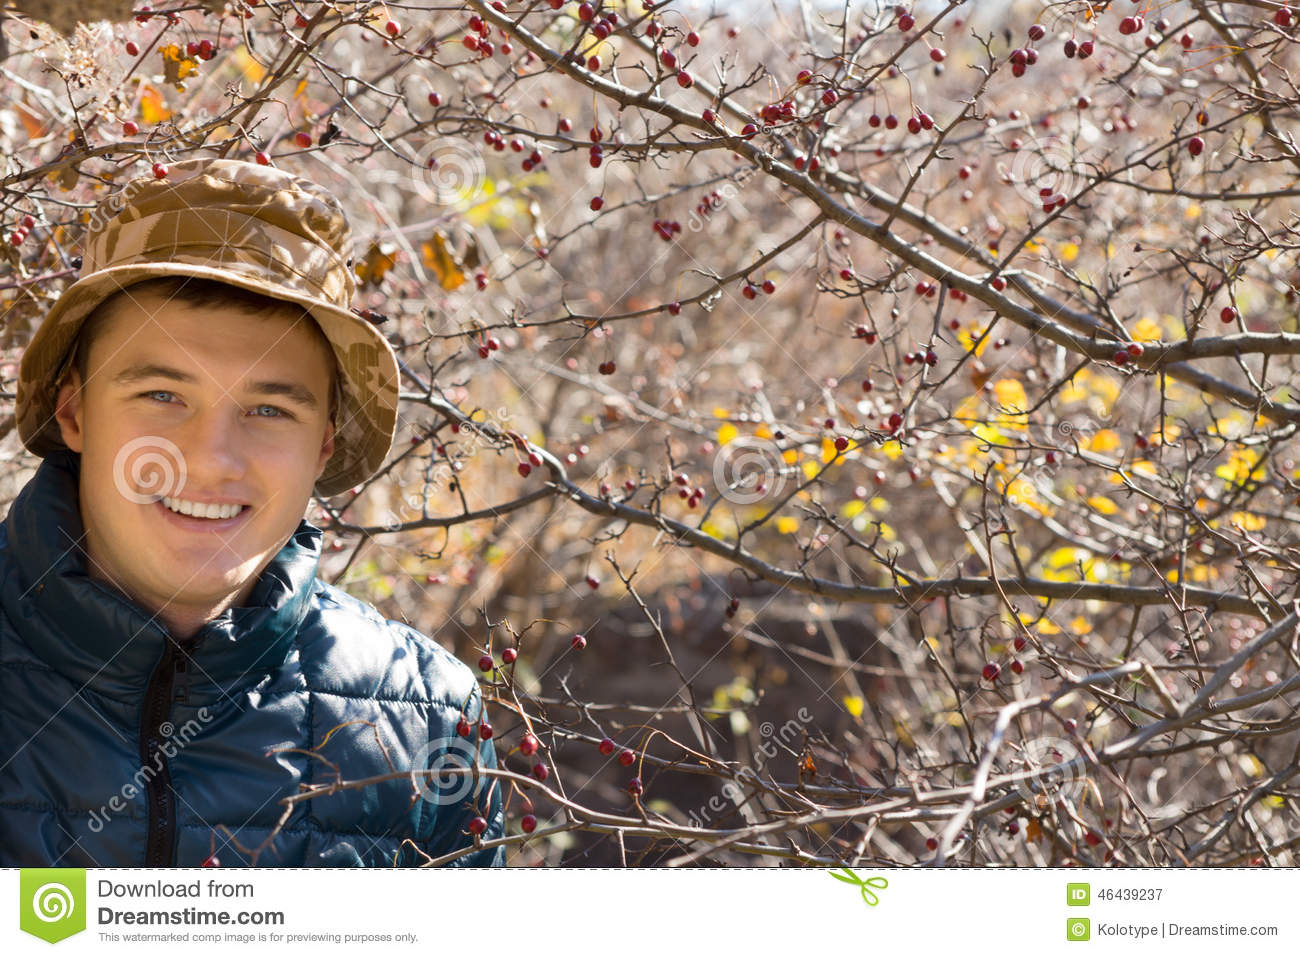 Smiling handsome young man outdoors in woodland